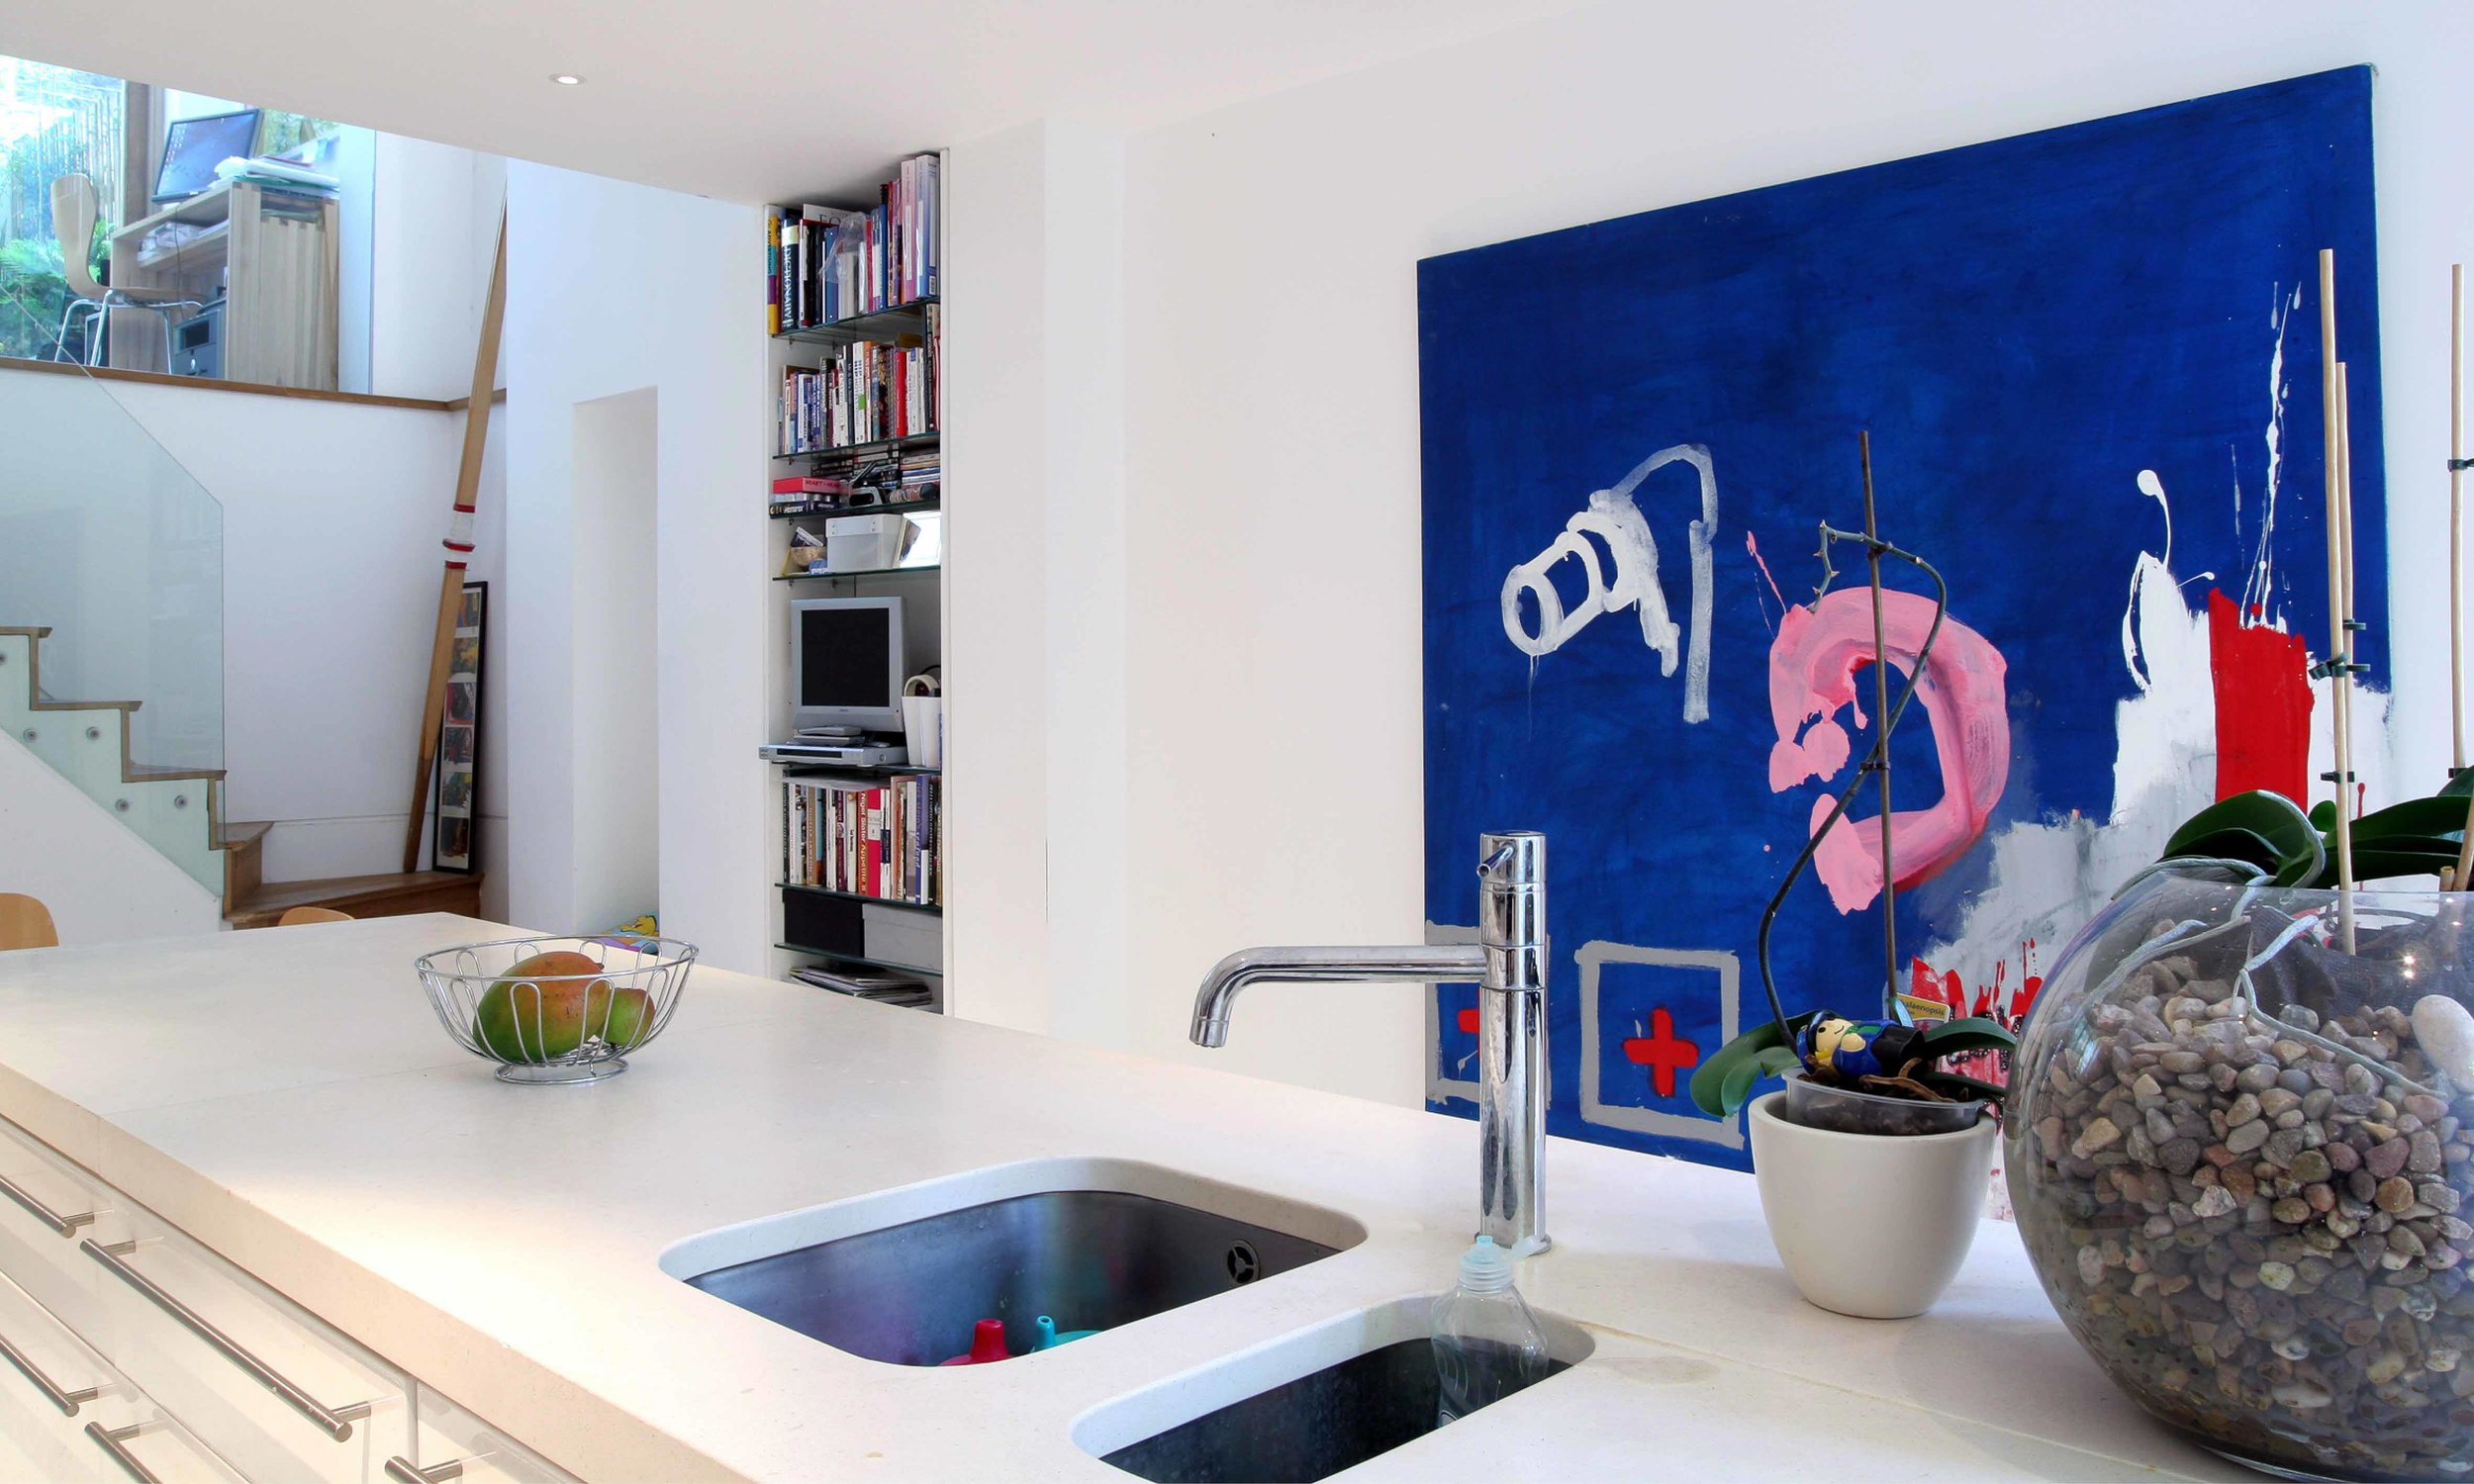 The new kitchen in the basement of the property. The glass __ to the staircase brings additional light to allow the space be naturally light. Modern art hangs on the walls bringing colour to the space.